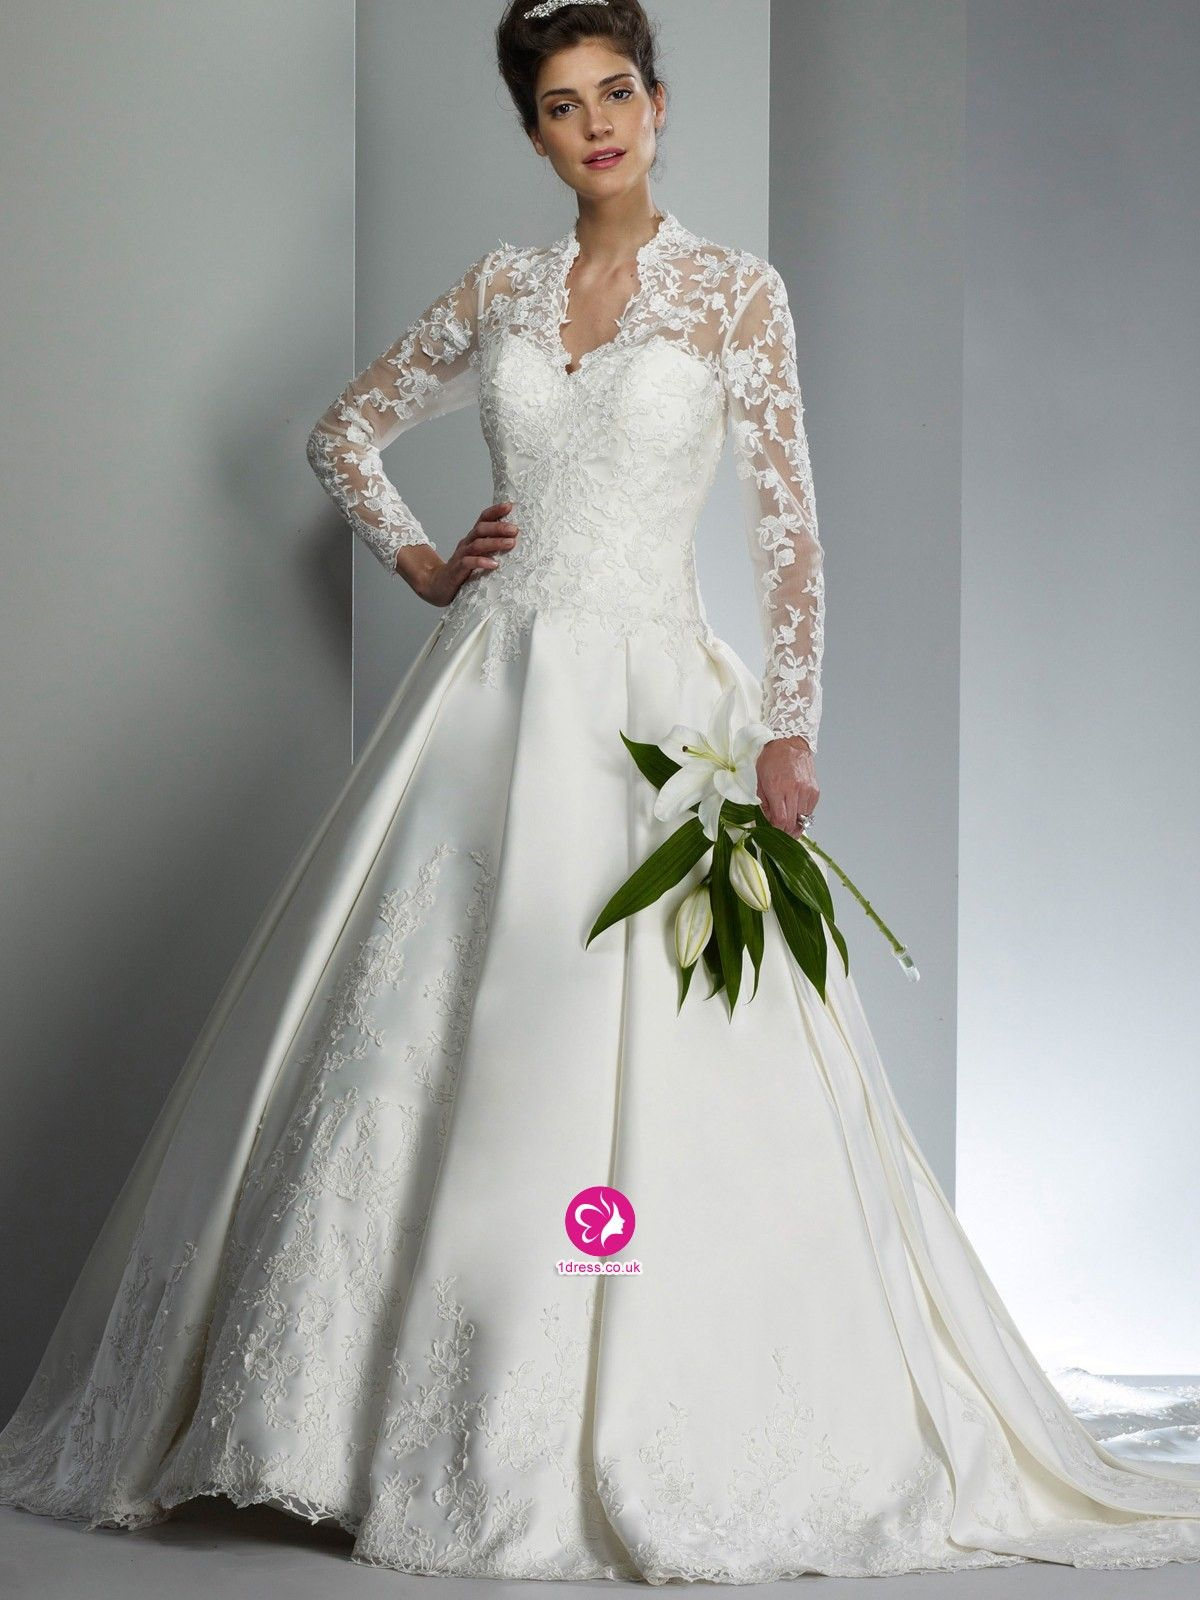 Specials Classic Lace V Neck 2015 Vintage High Collar Long Sleeve Wedding Dresses Free Measurement